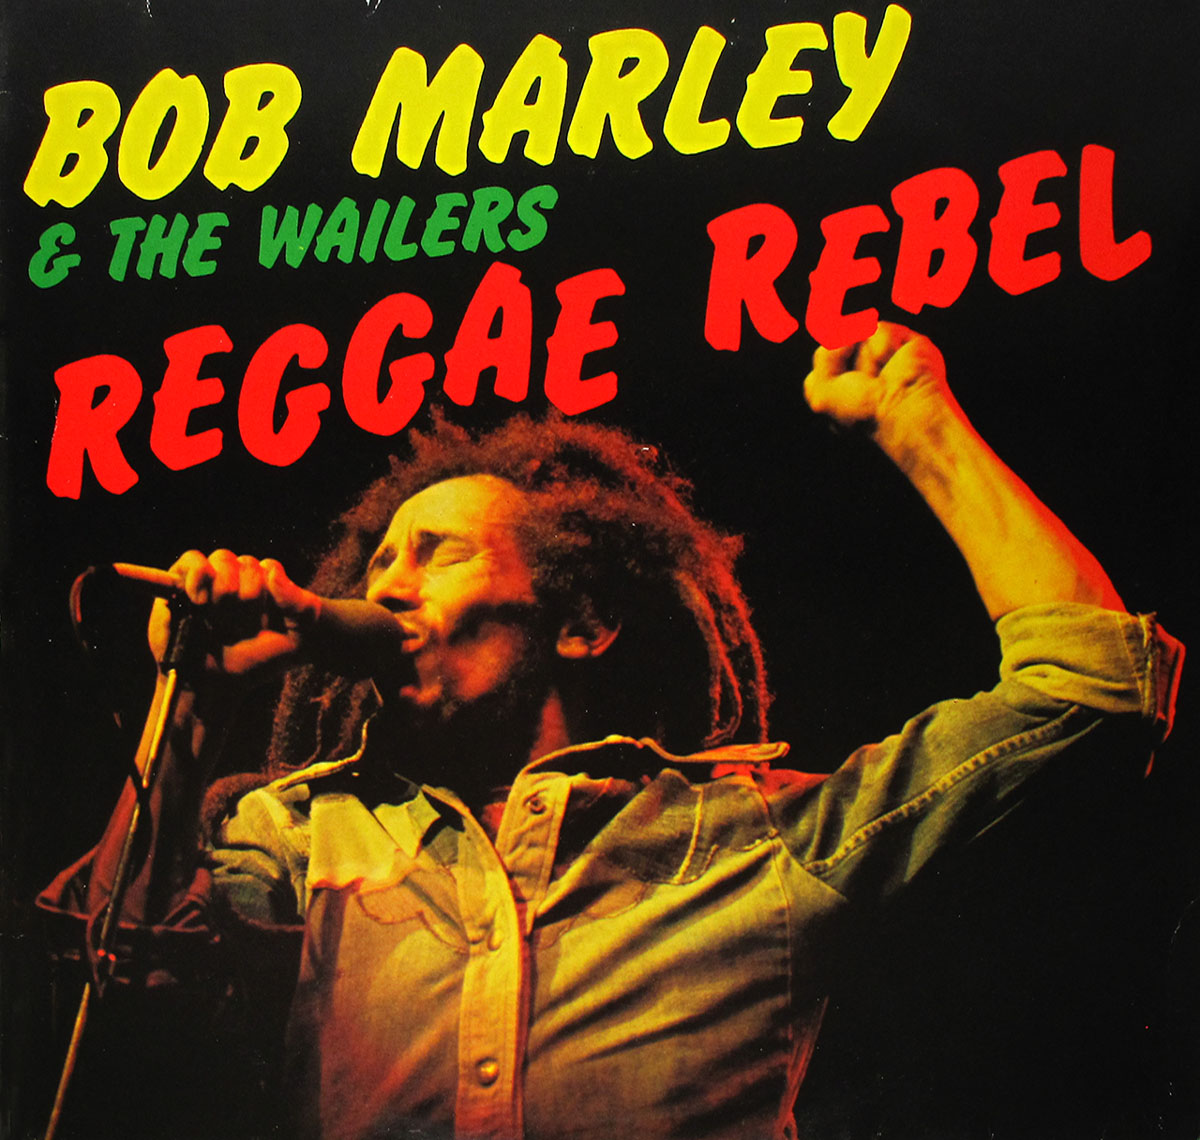 High Resolution Photo #10 bob marley wailers reggae rebel